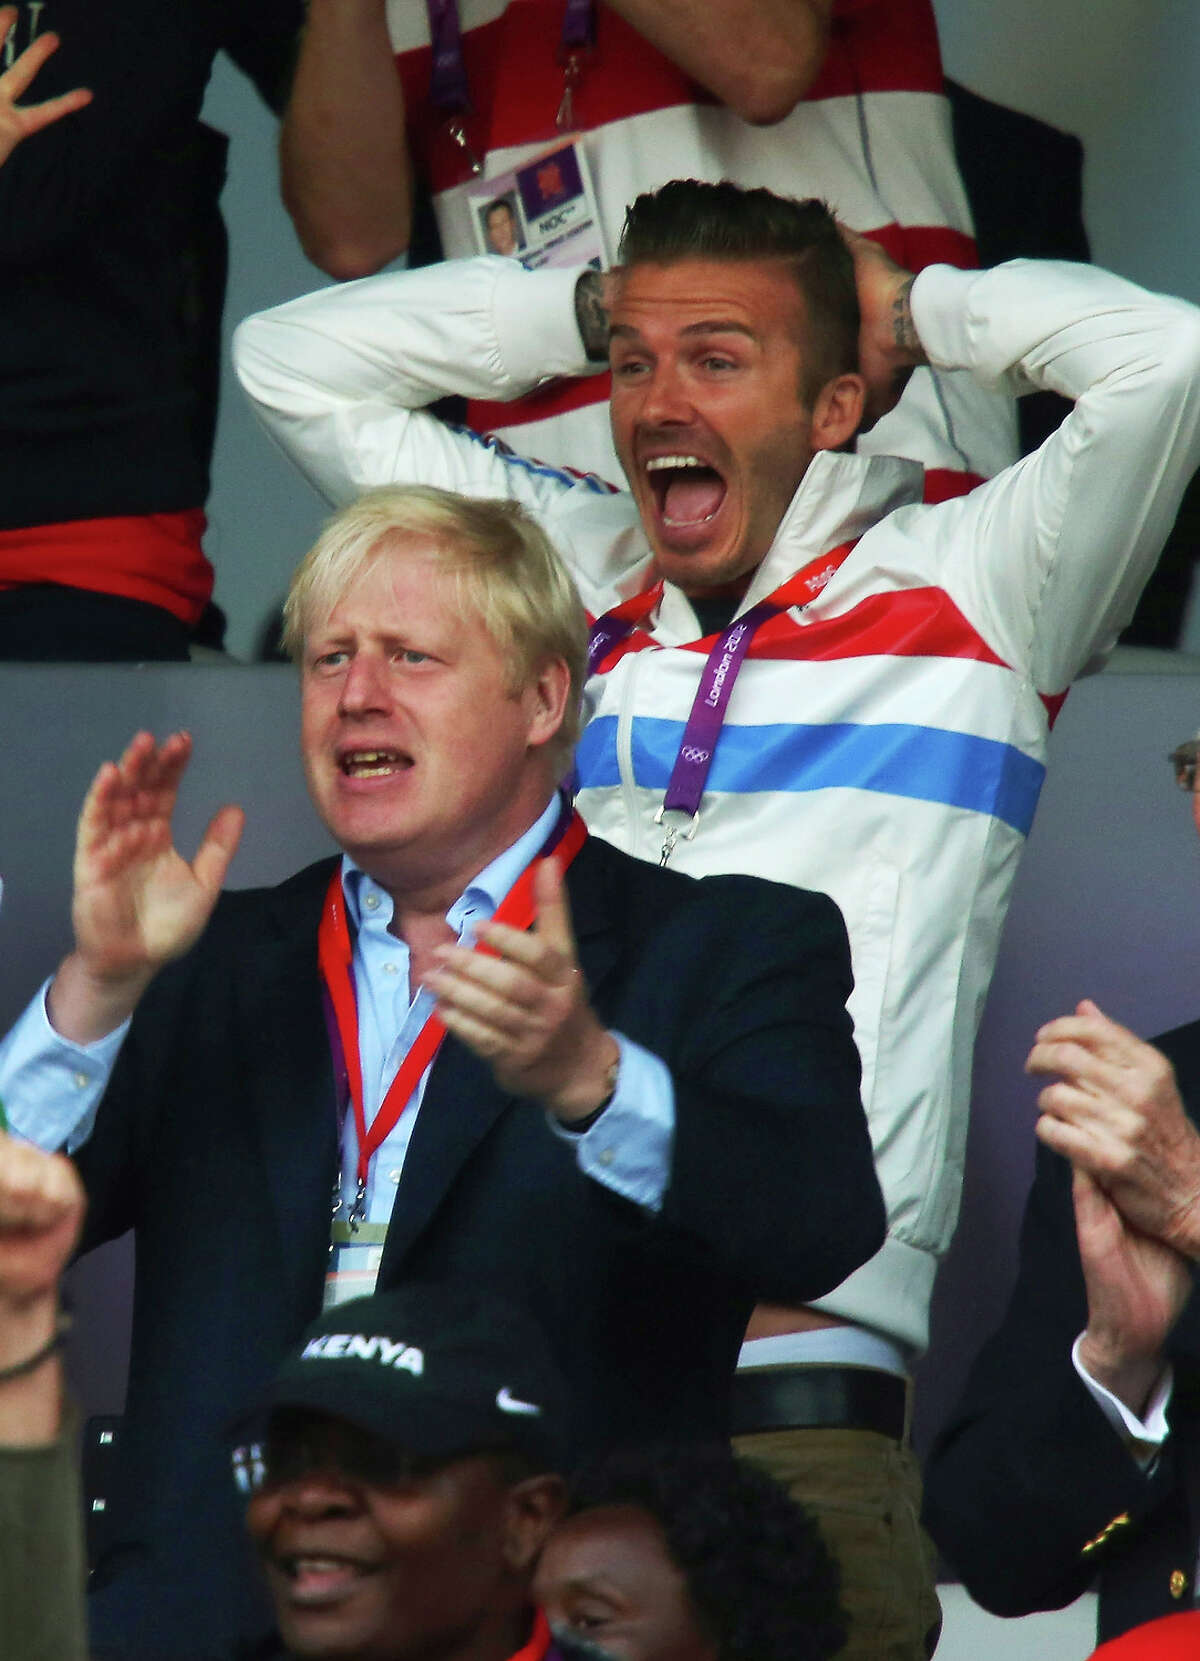 Britain's Prime Minister Boris Johnson: Fellow Conservatives in parliament have defied him, and voted to block a no-deal exit from the European Union. (David Beckham in background.)